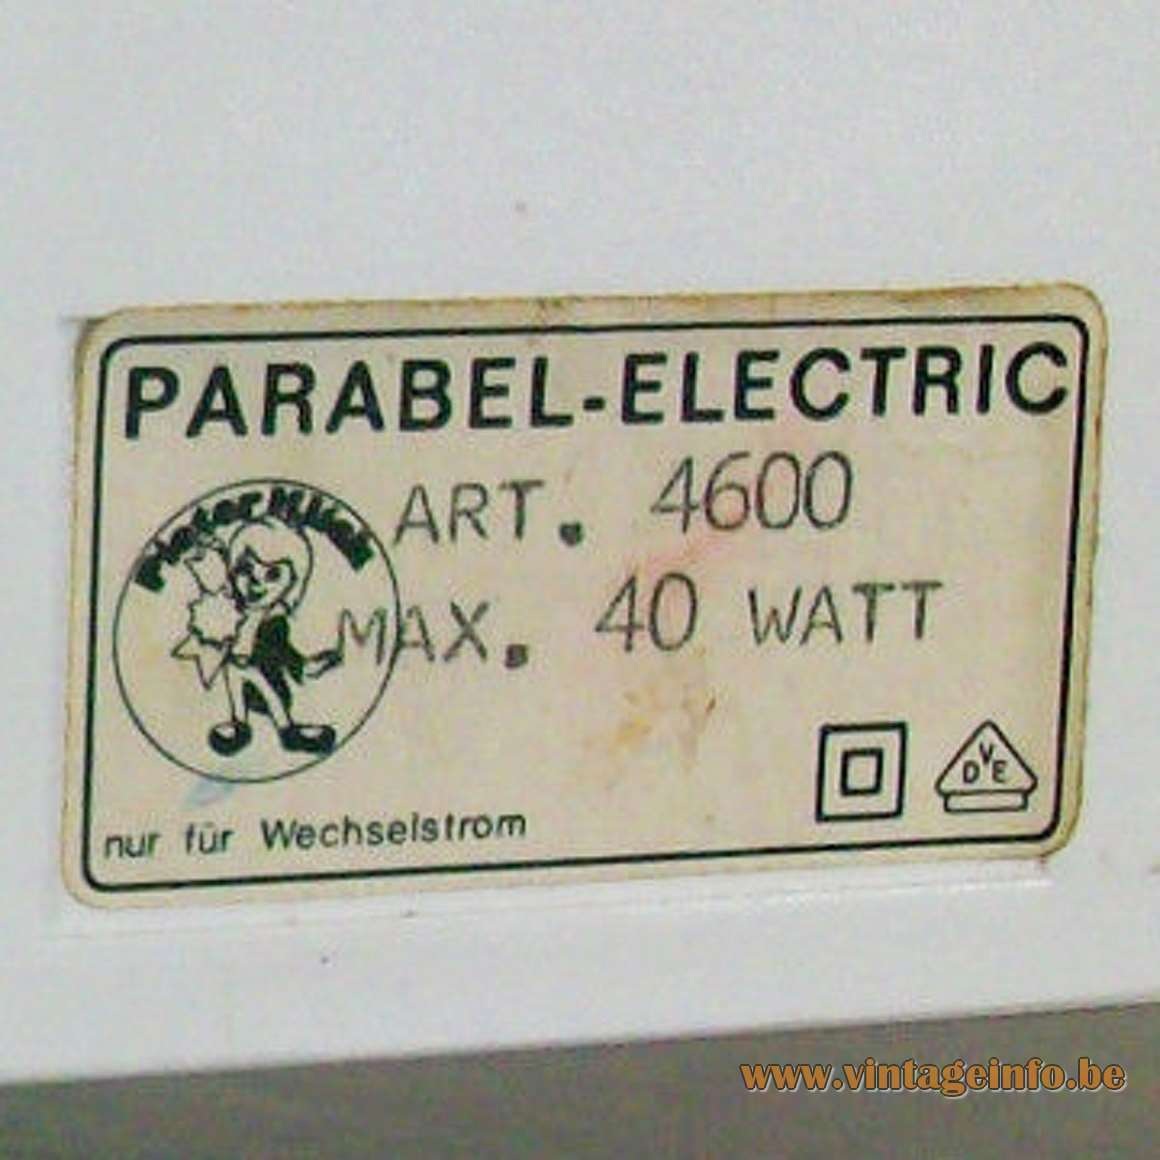 Parabel-Electric Pieter Klick Table Lamp - Label